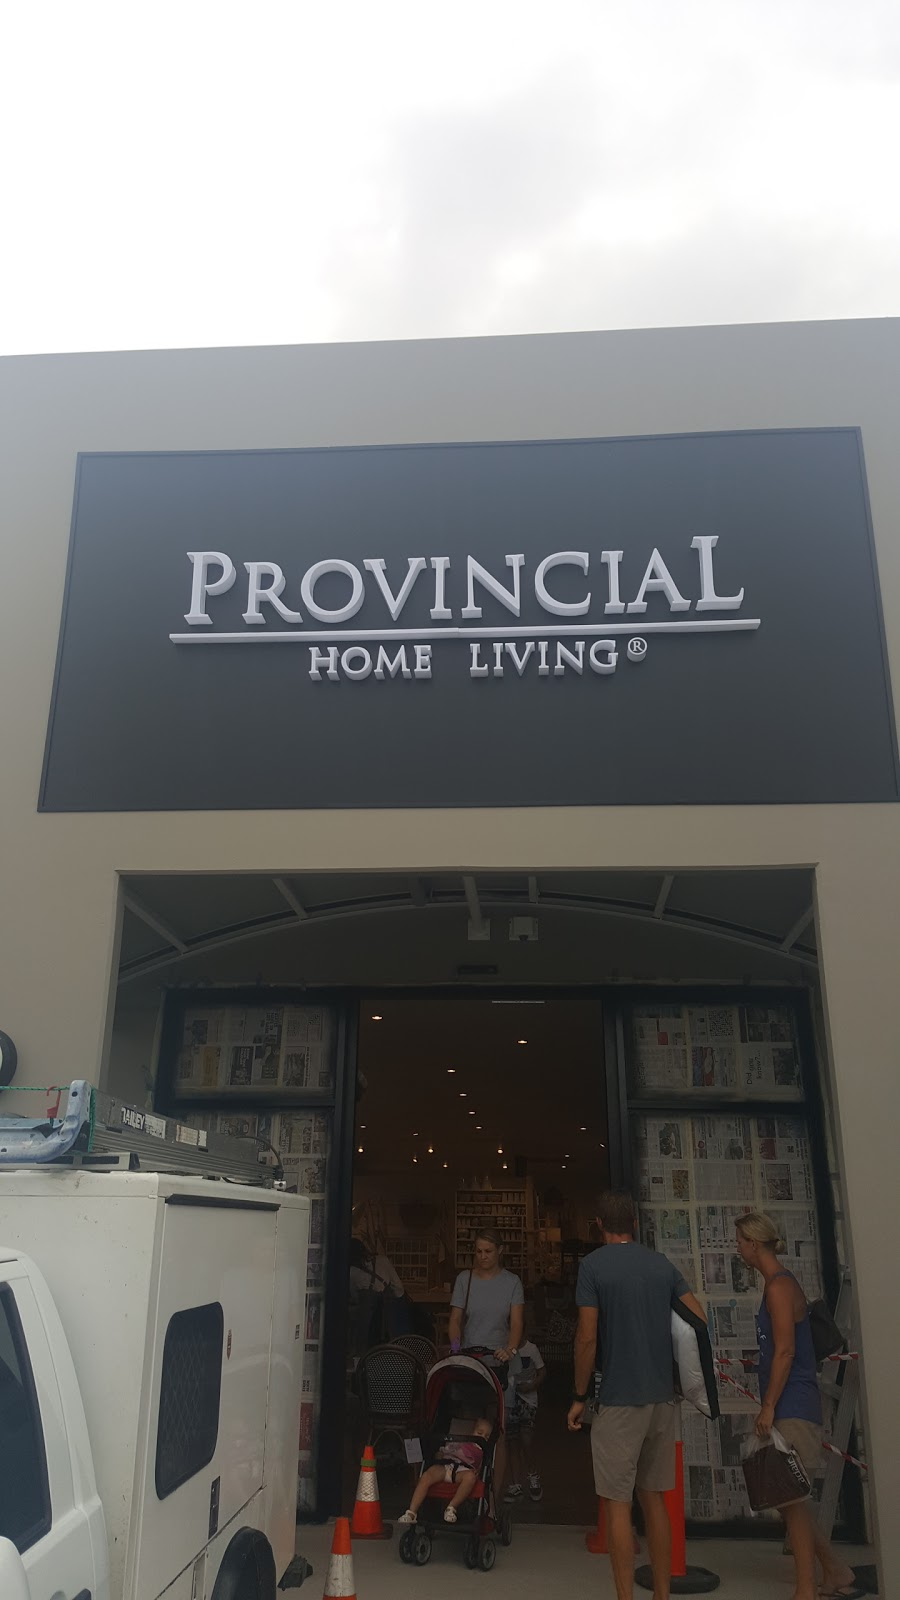 Provincial Home Living | furniture store | Sunshine Coast Home, Shop 20, 100 Maroochydore Road, Maroochydore QLD 4558, Australia | 0753026859 OR +61 7 5302 6859